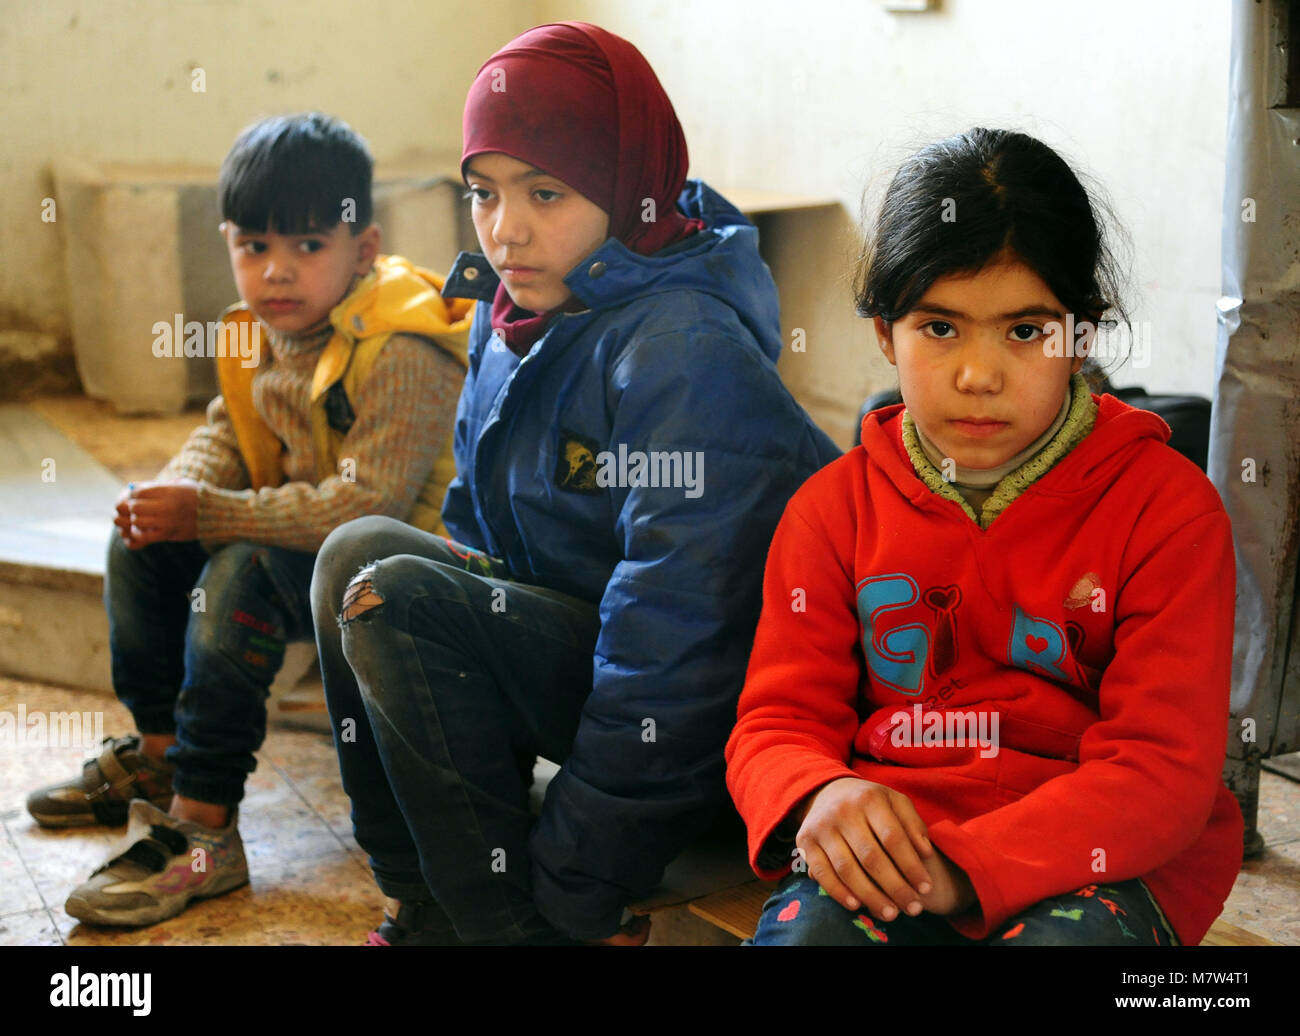 (180313) -- DAMASCUS, March 13, 2018 (Xinhua) -- Evacuated children sit in a temporary shelter in Wafidin area, Stock Photo